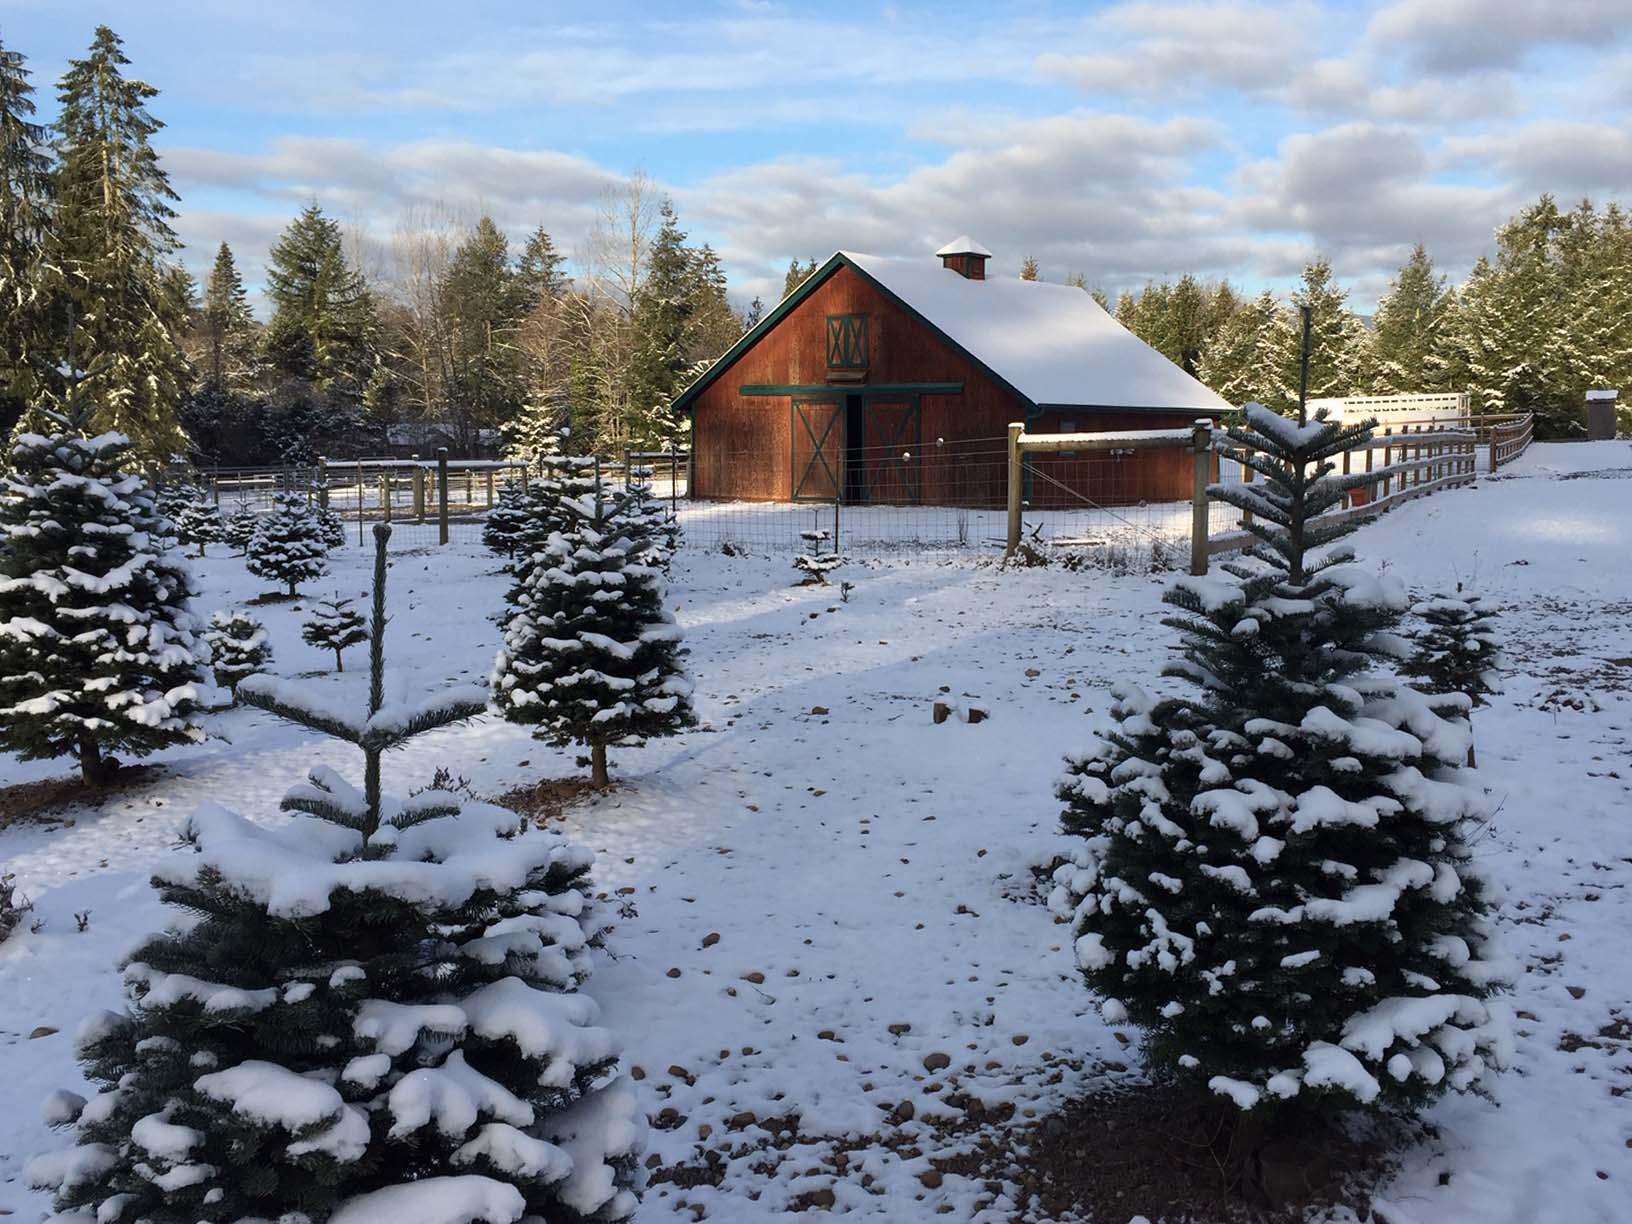 2020 Guide To Christmas Tree Farms In Thurston County Thurstontalk